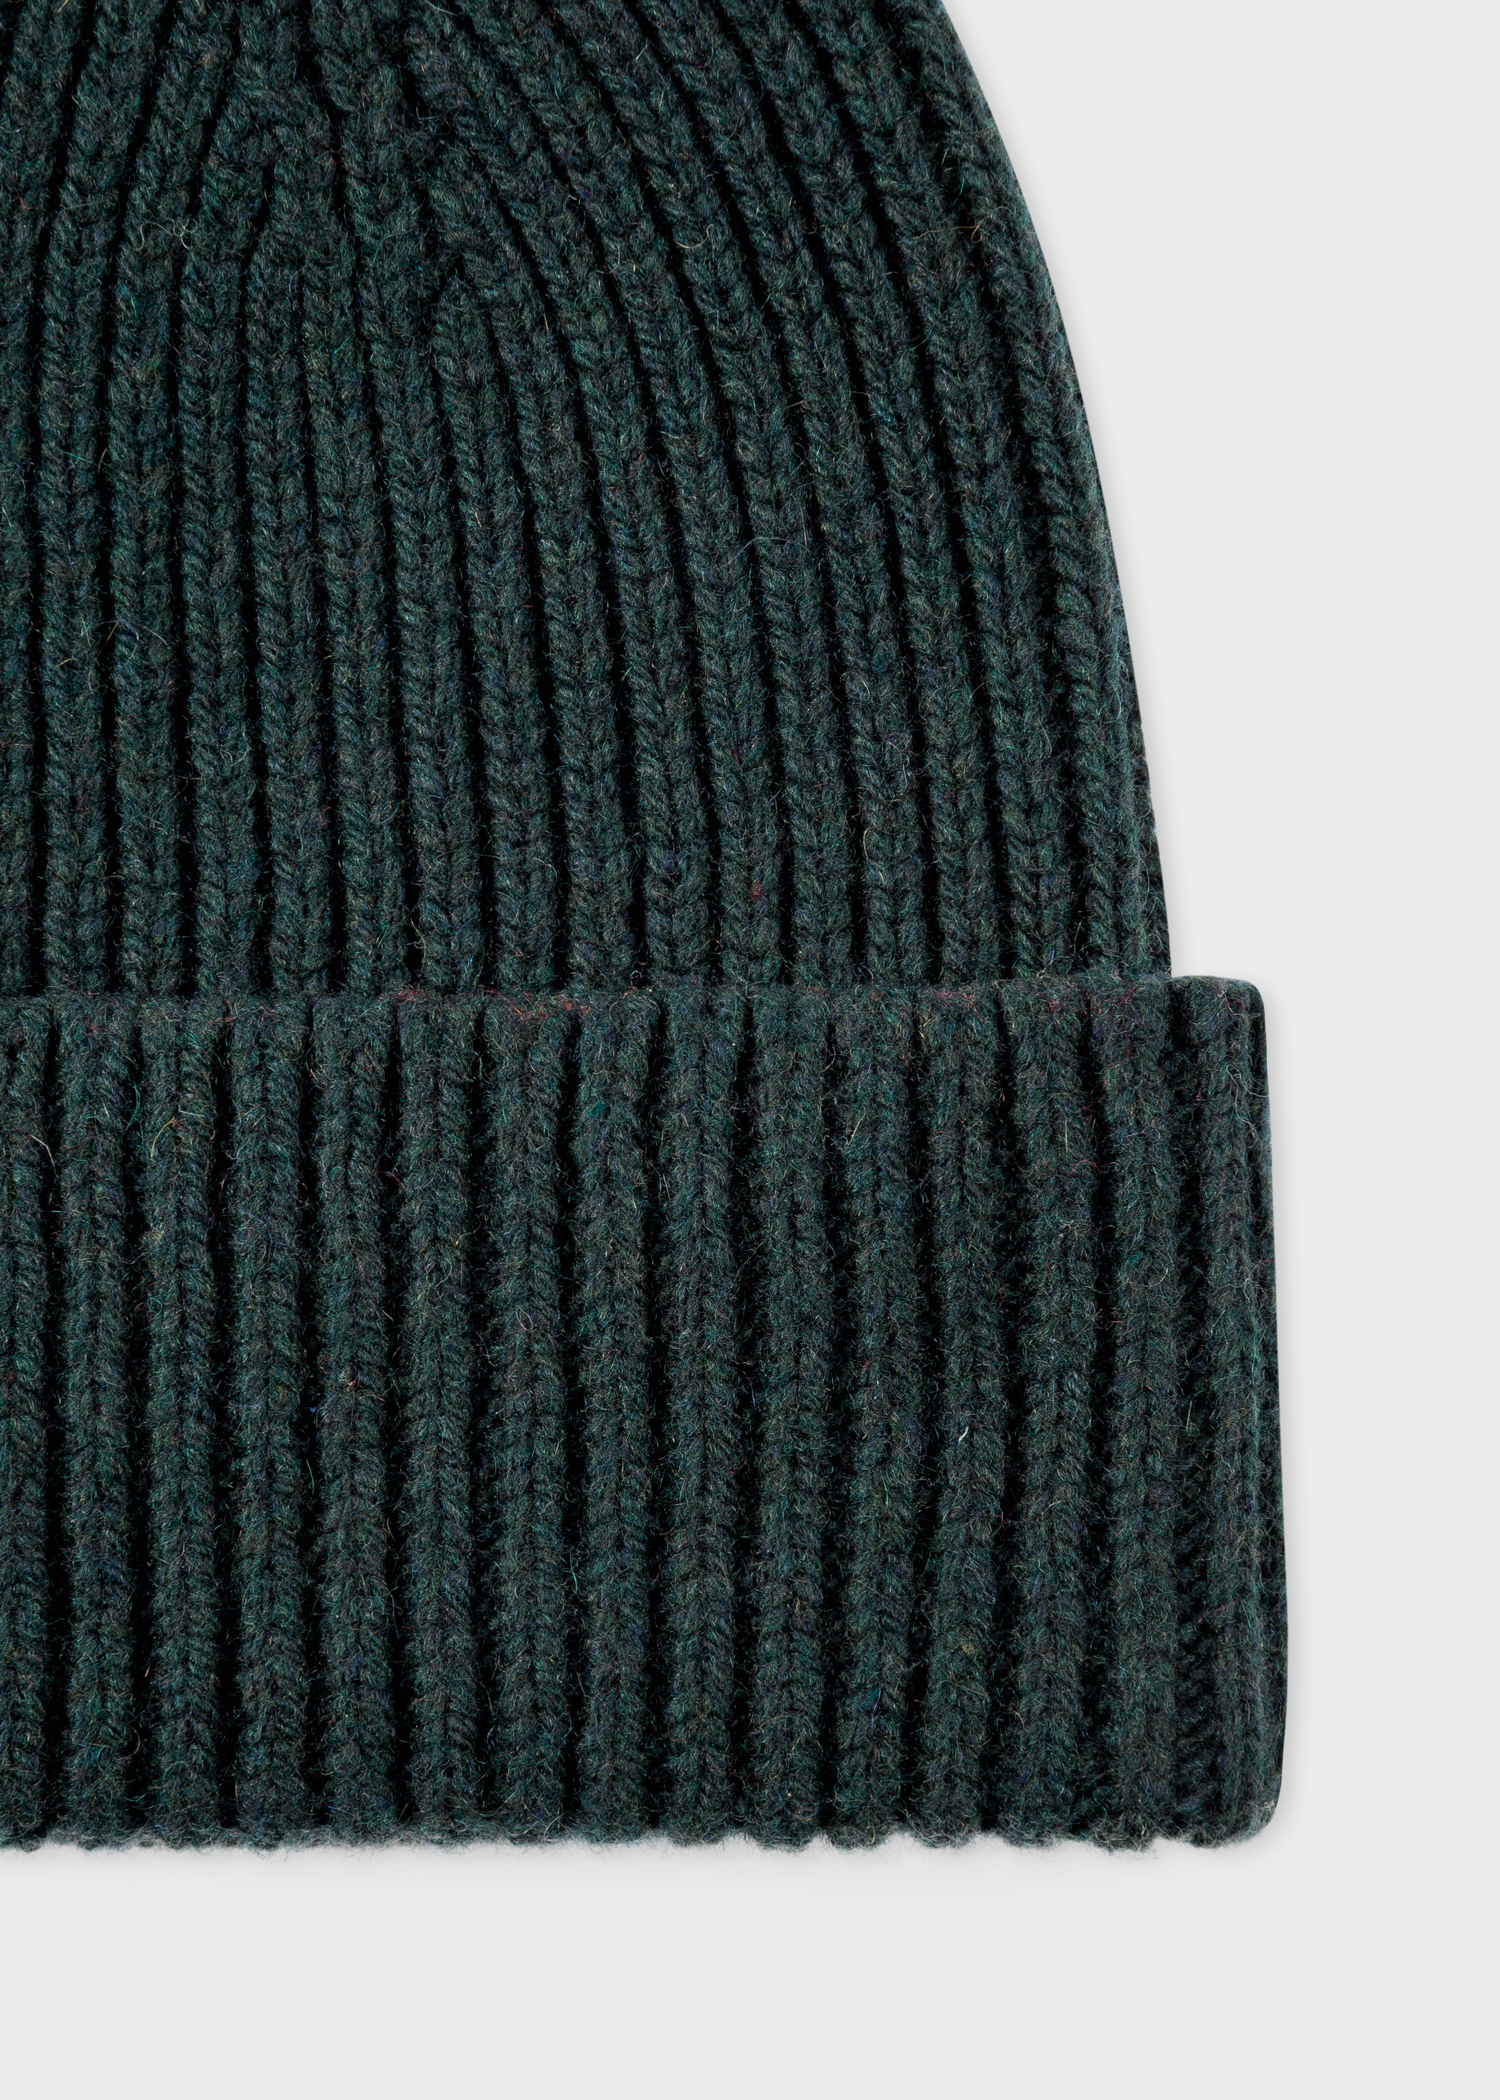 ca251674dc7 Men s Dark Green Cashmere-Blend Beanie Hat - Paul Smith US